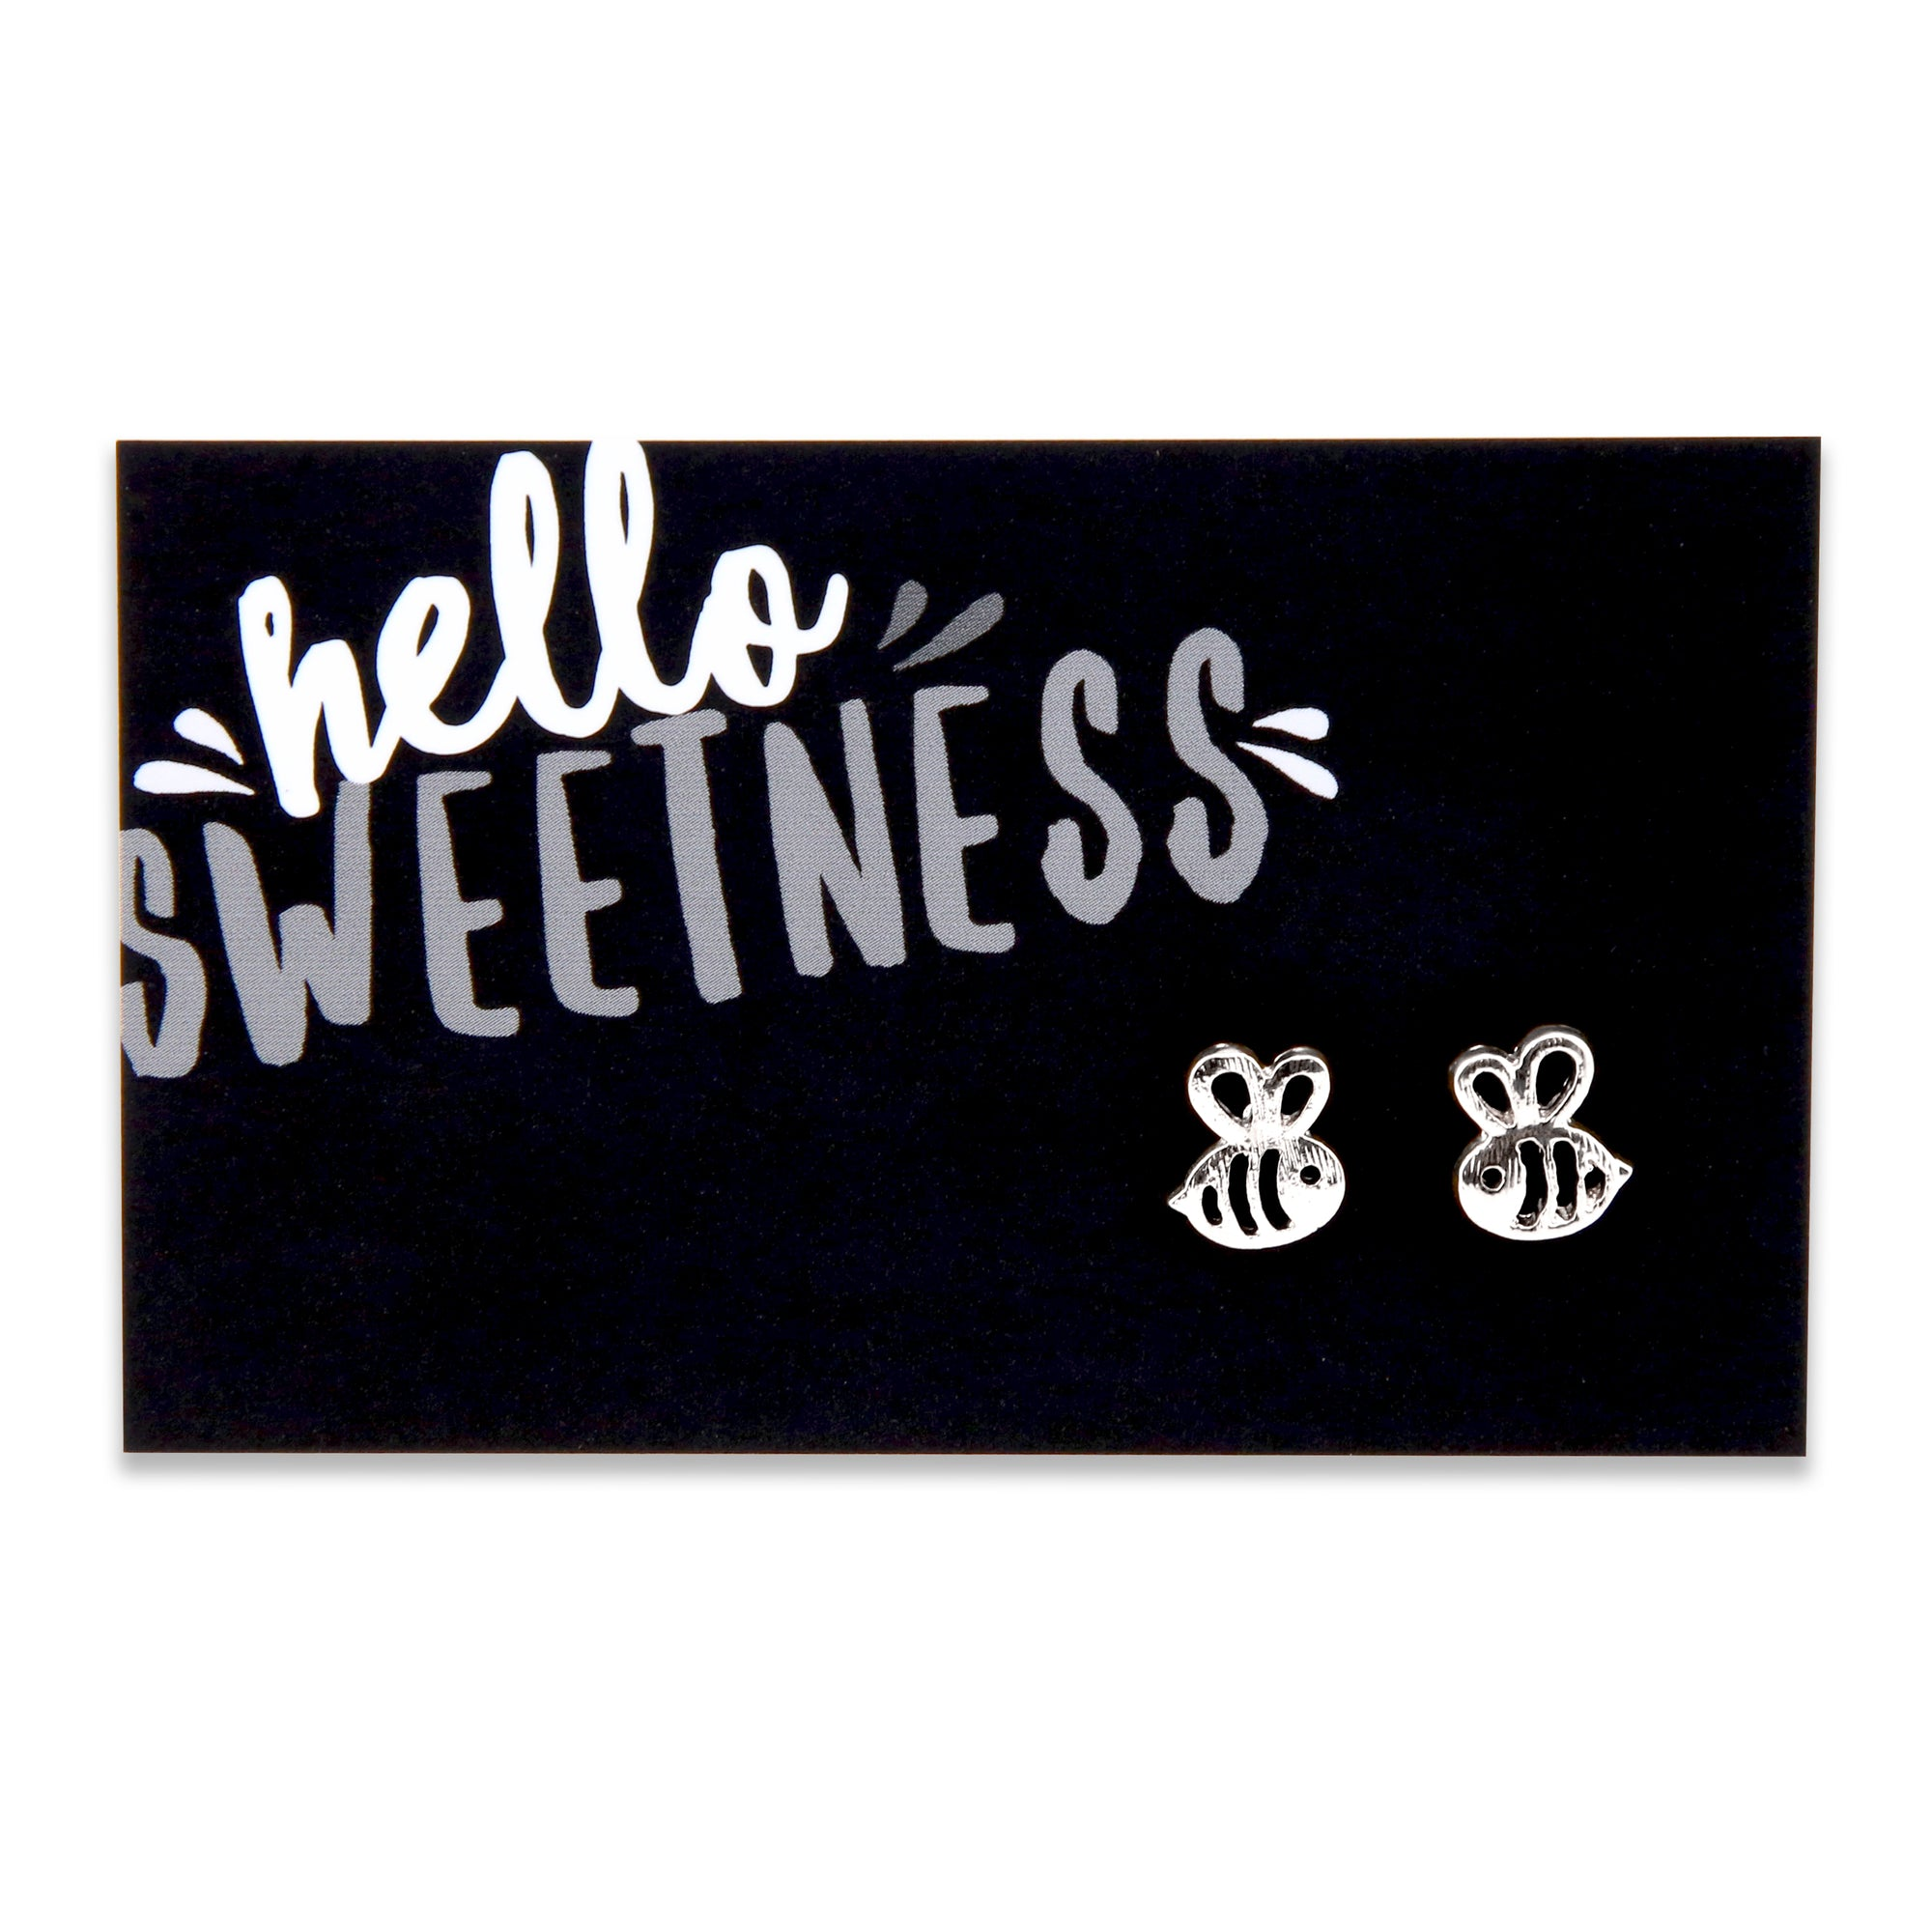 Hello Sweetness! Bumble Bee Earring Studs - Silver (9210)